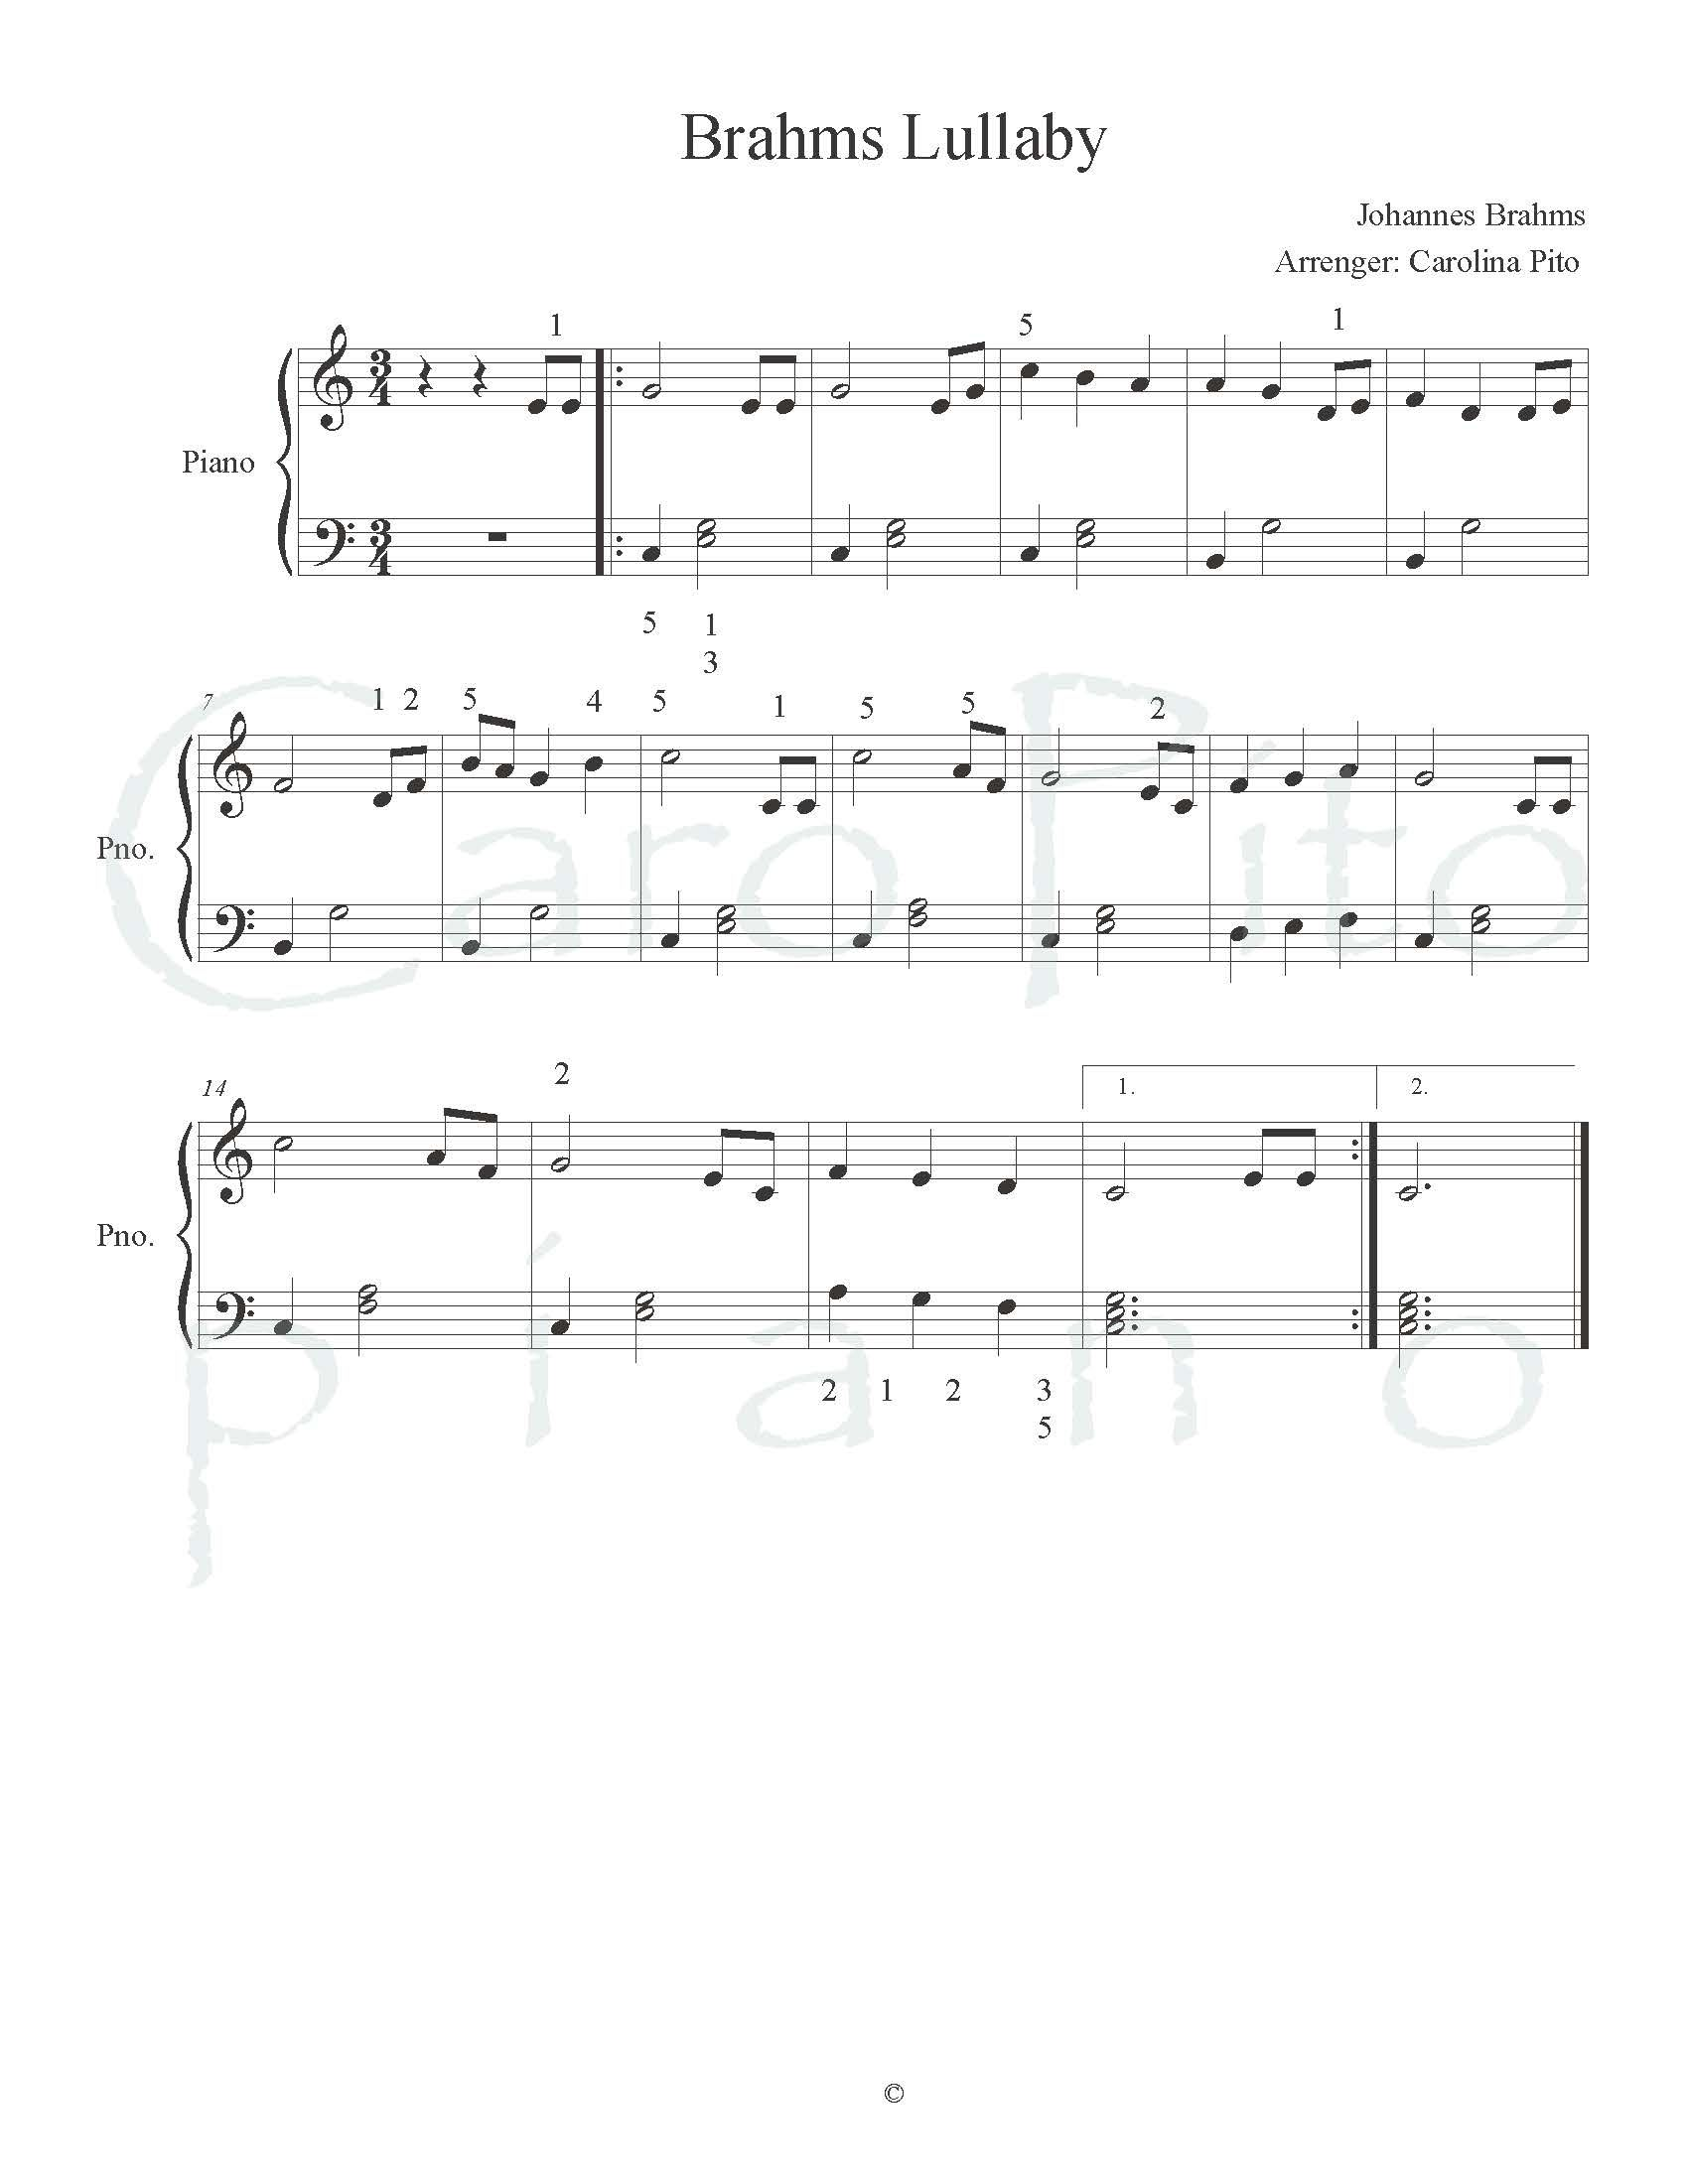 Brahms Lullaby Free Sheet Music By Caropito Piano With Images